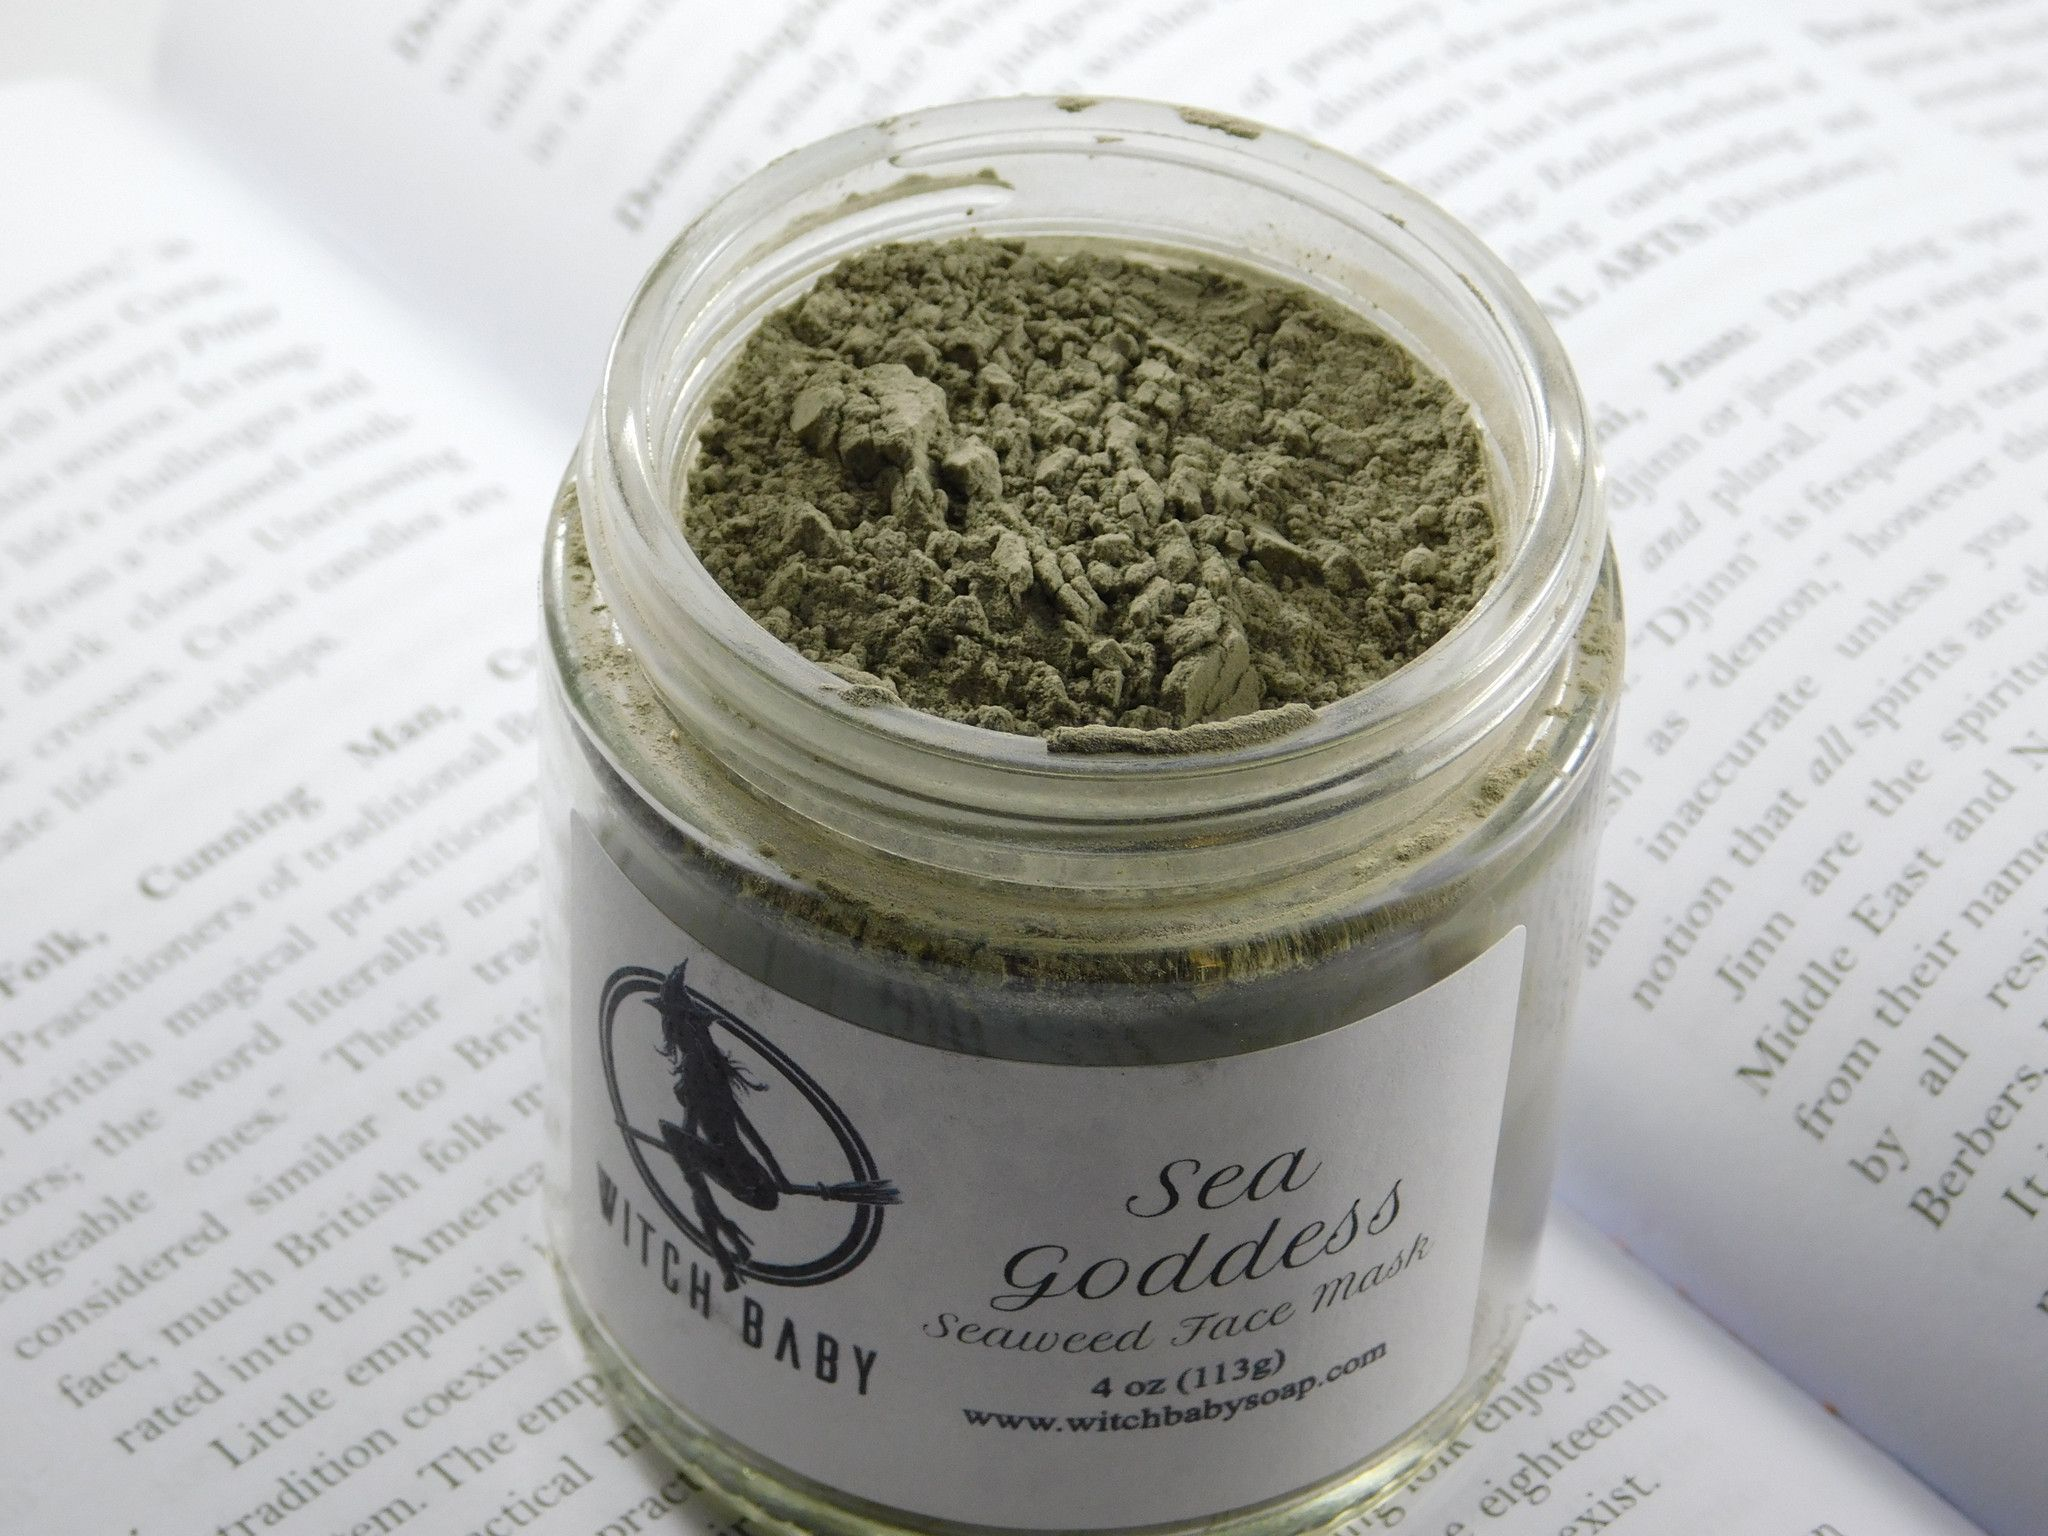 HAS A STRONG SEA WEED SMELL* Sea Goddess is an oceanic skin treat